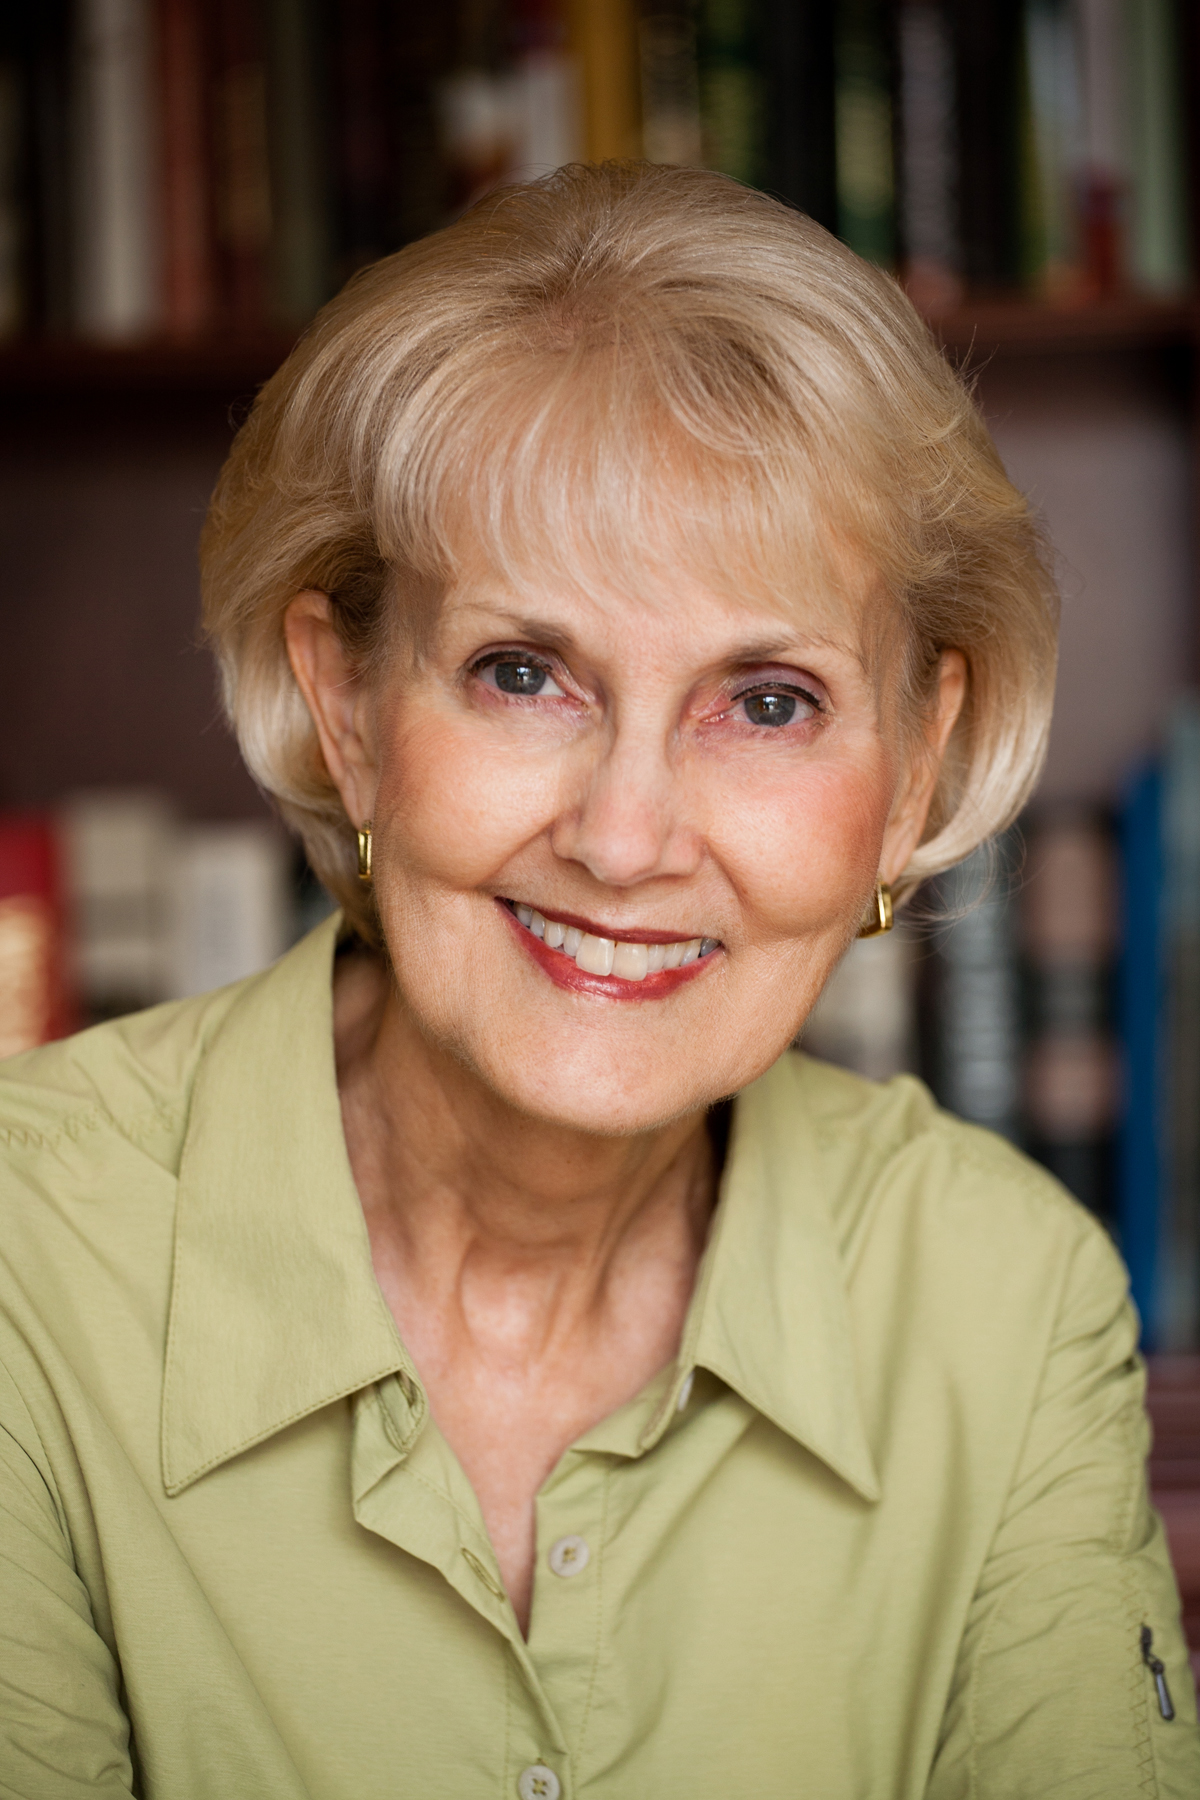 Photo of Susan Vreeland